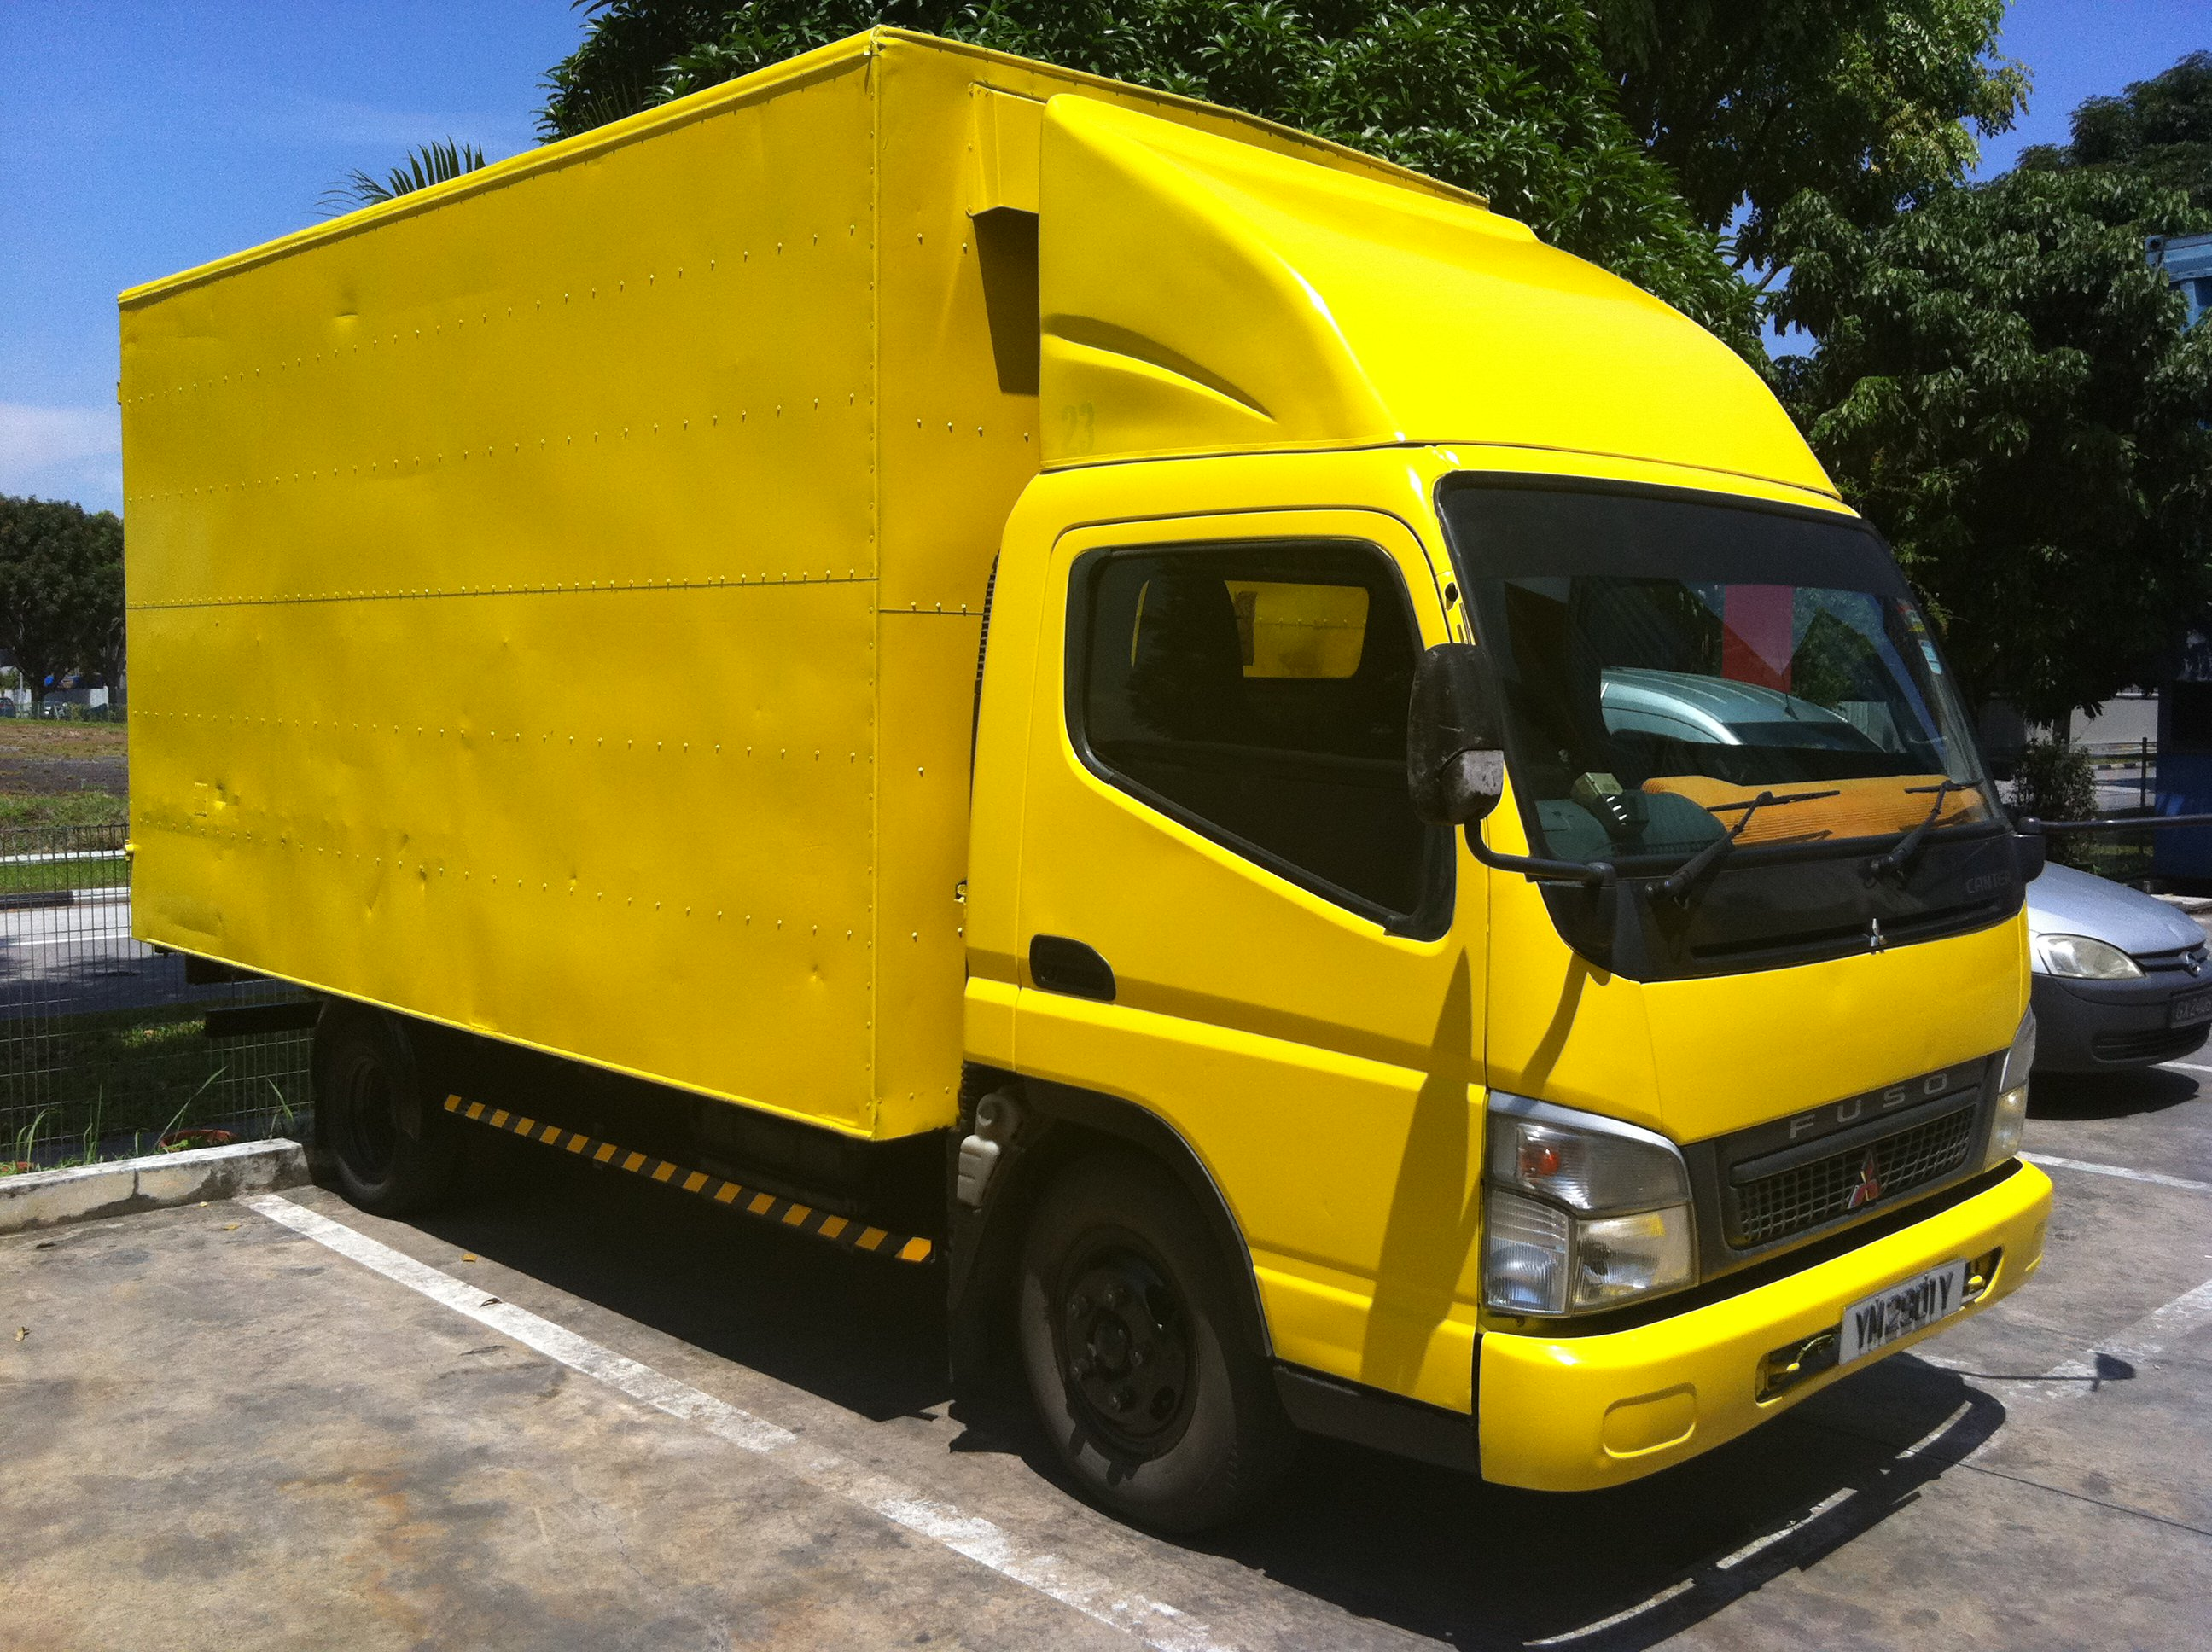 FOR SALE: 14' ft Box Truck with Manpower